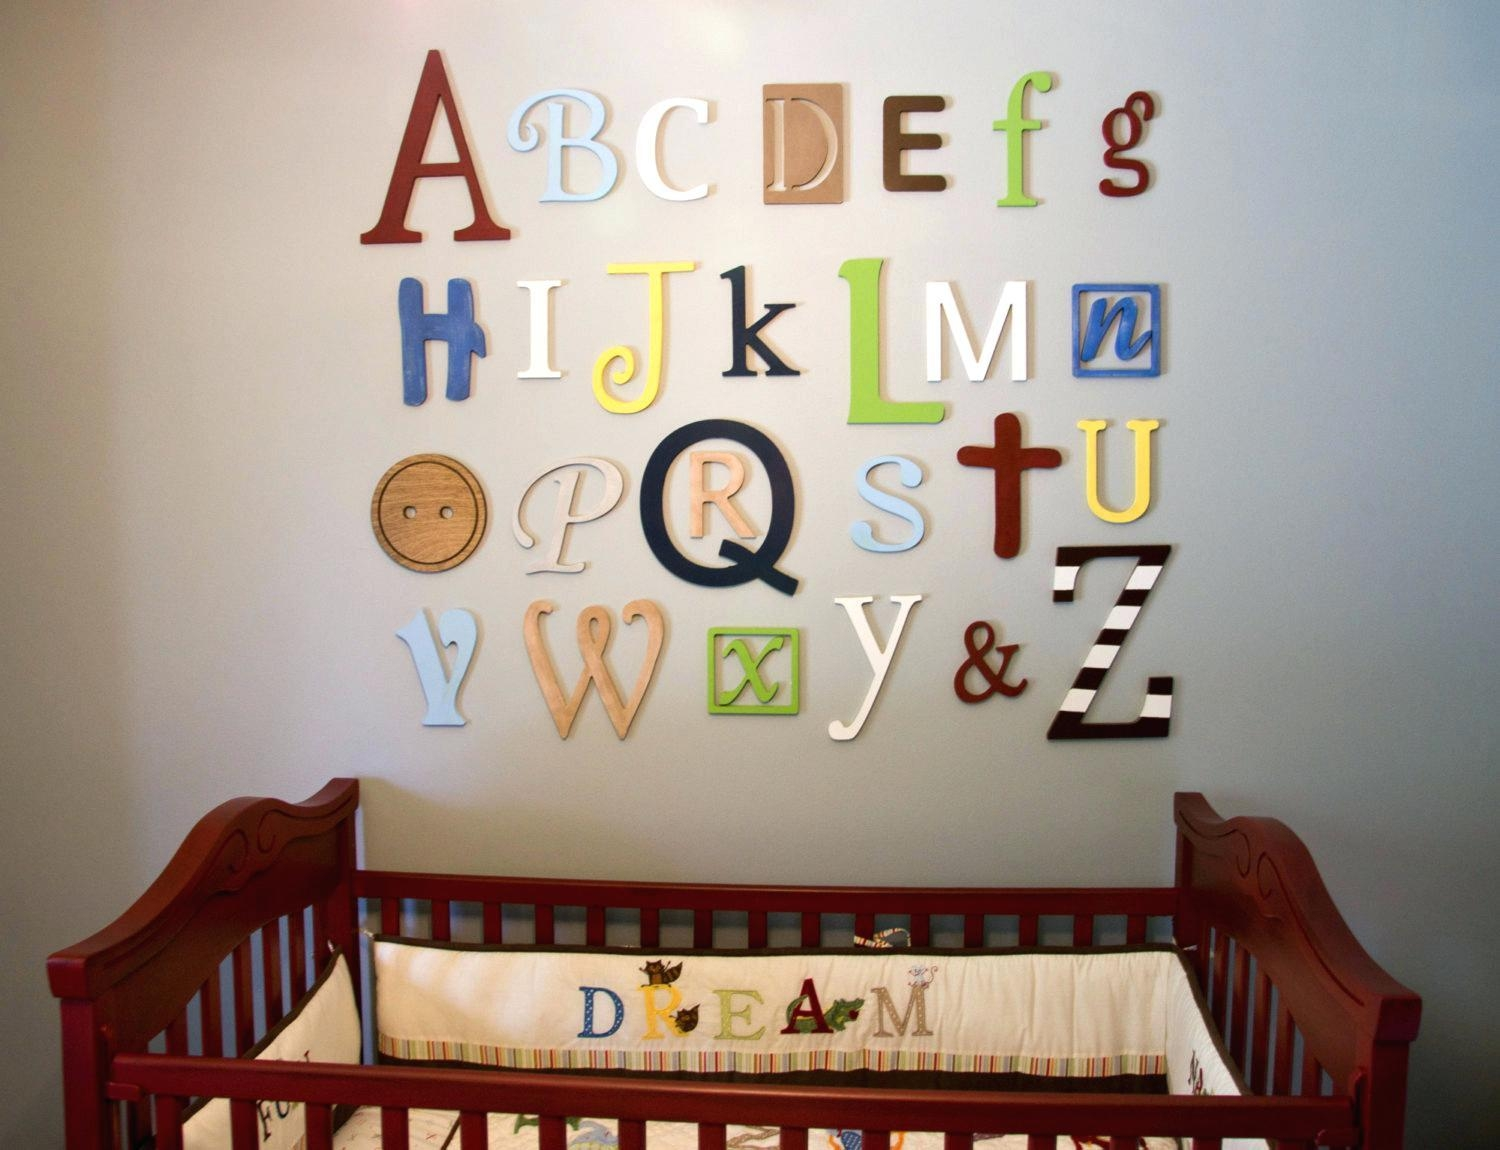 Wall Ideas : Decorative Letters For Wall Australia Decorative Within Decorative Initials Wall Art (View 19 of 20)